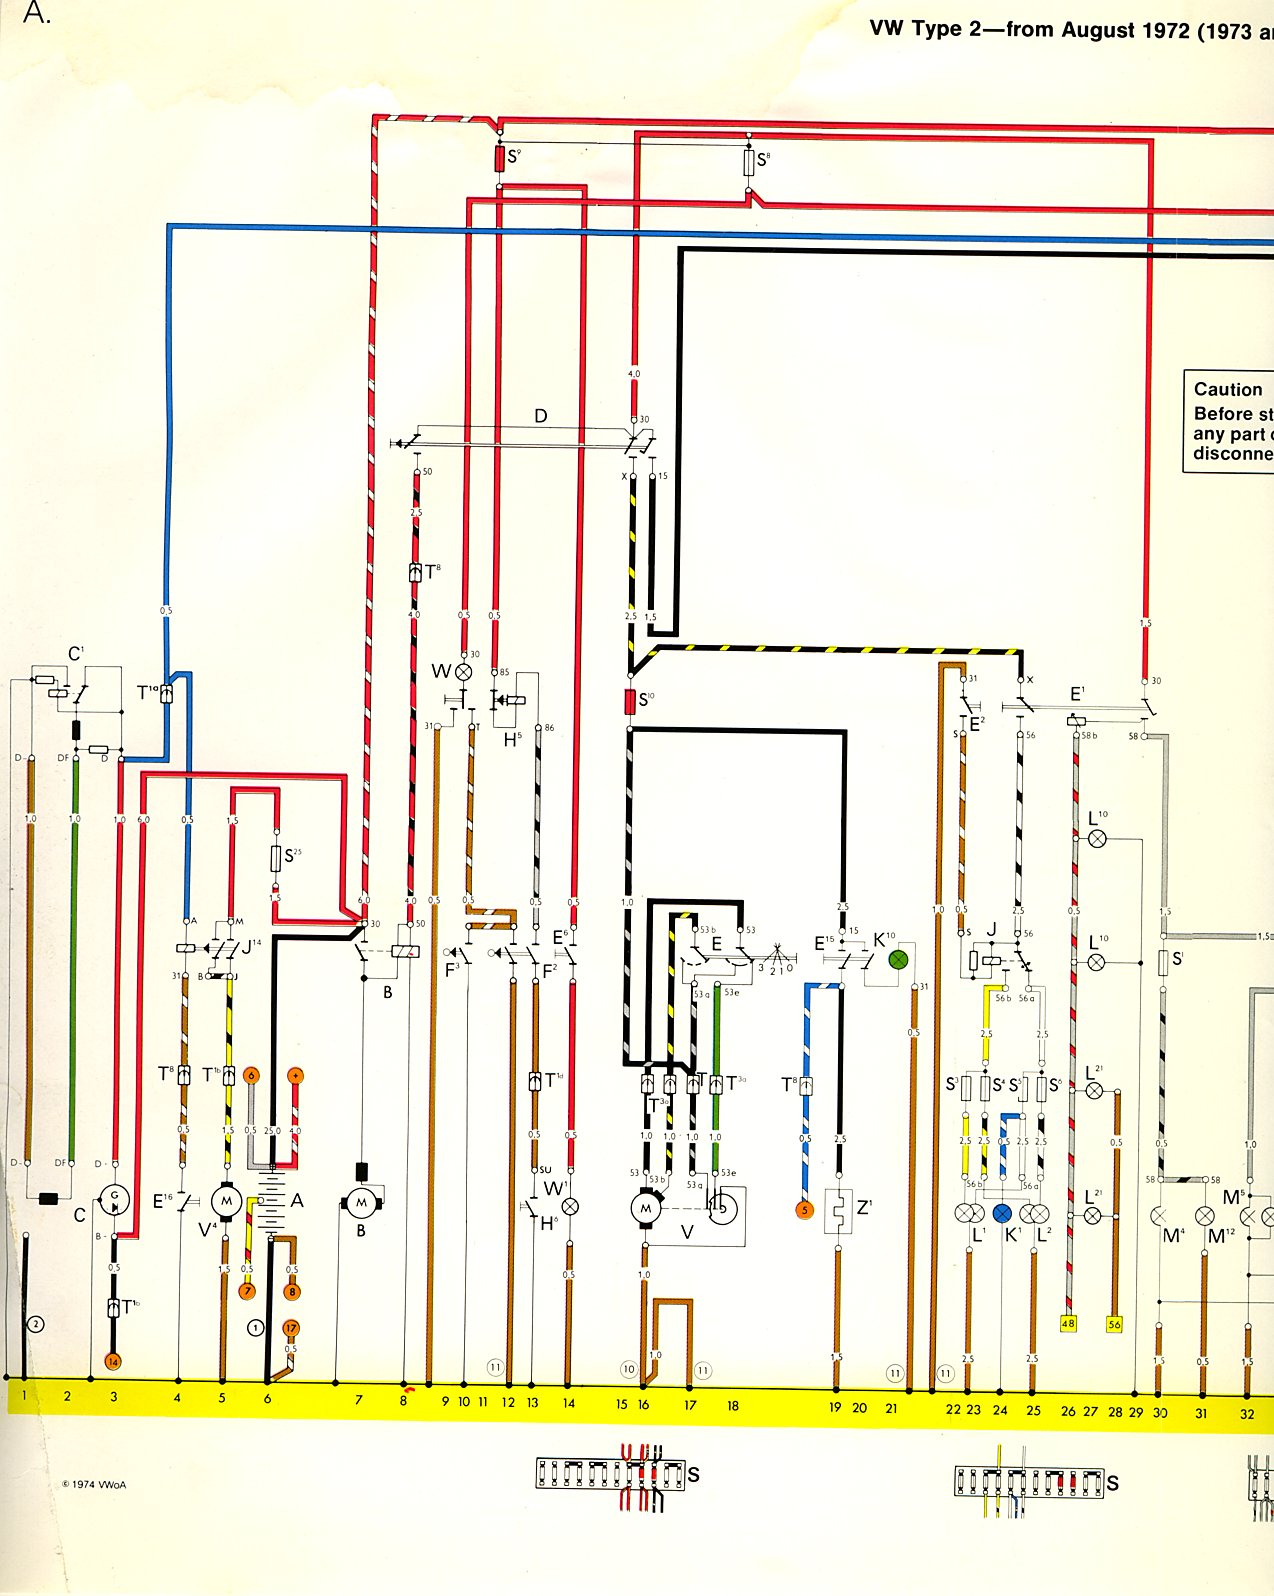 baybus_7374a vw bus wiring diagram 1965 vw bus wiring diagram \u2022 wiring diagrams House Fuse Box Location at reclaimingppi.co